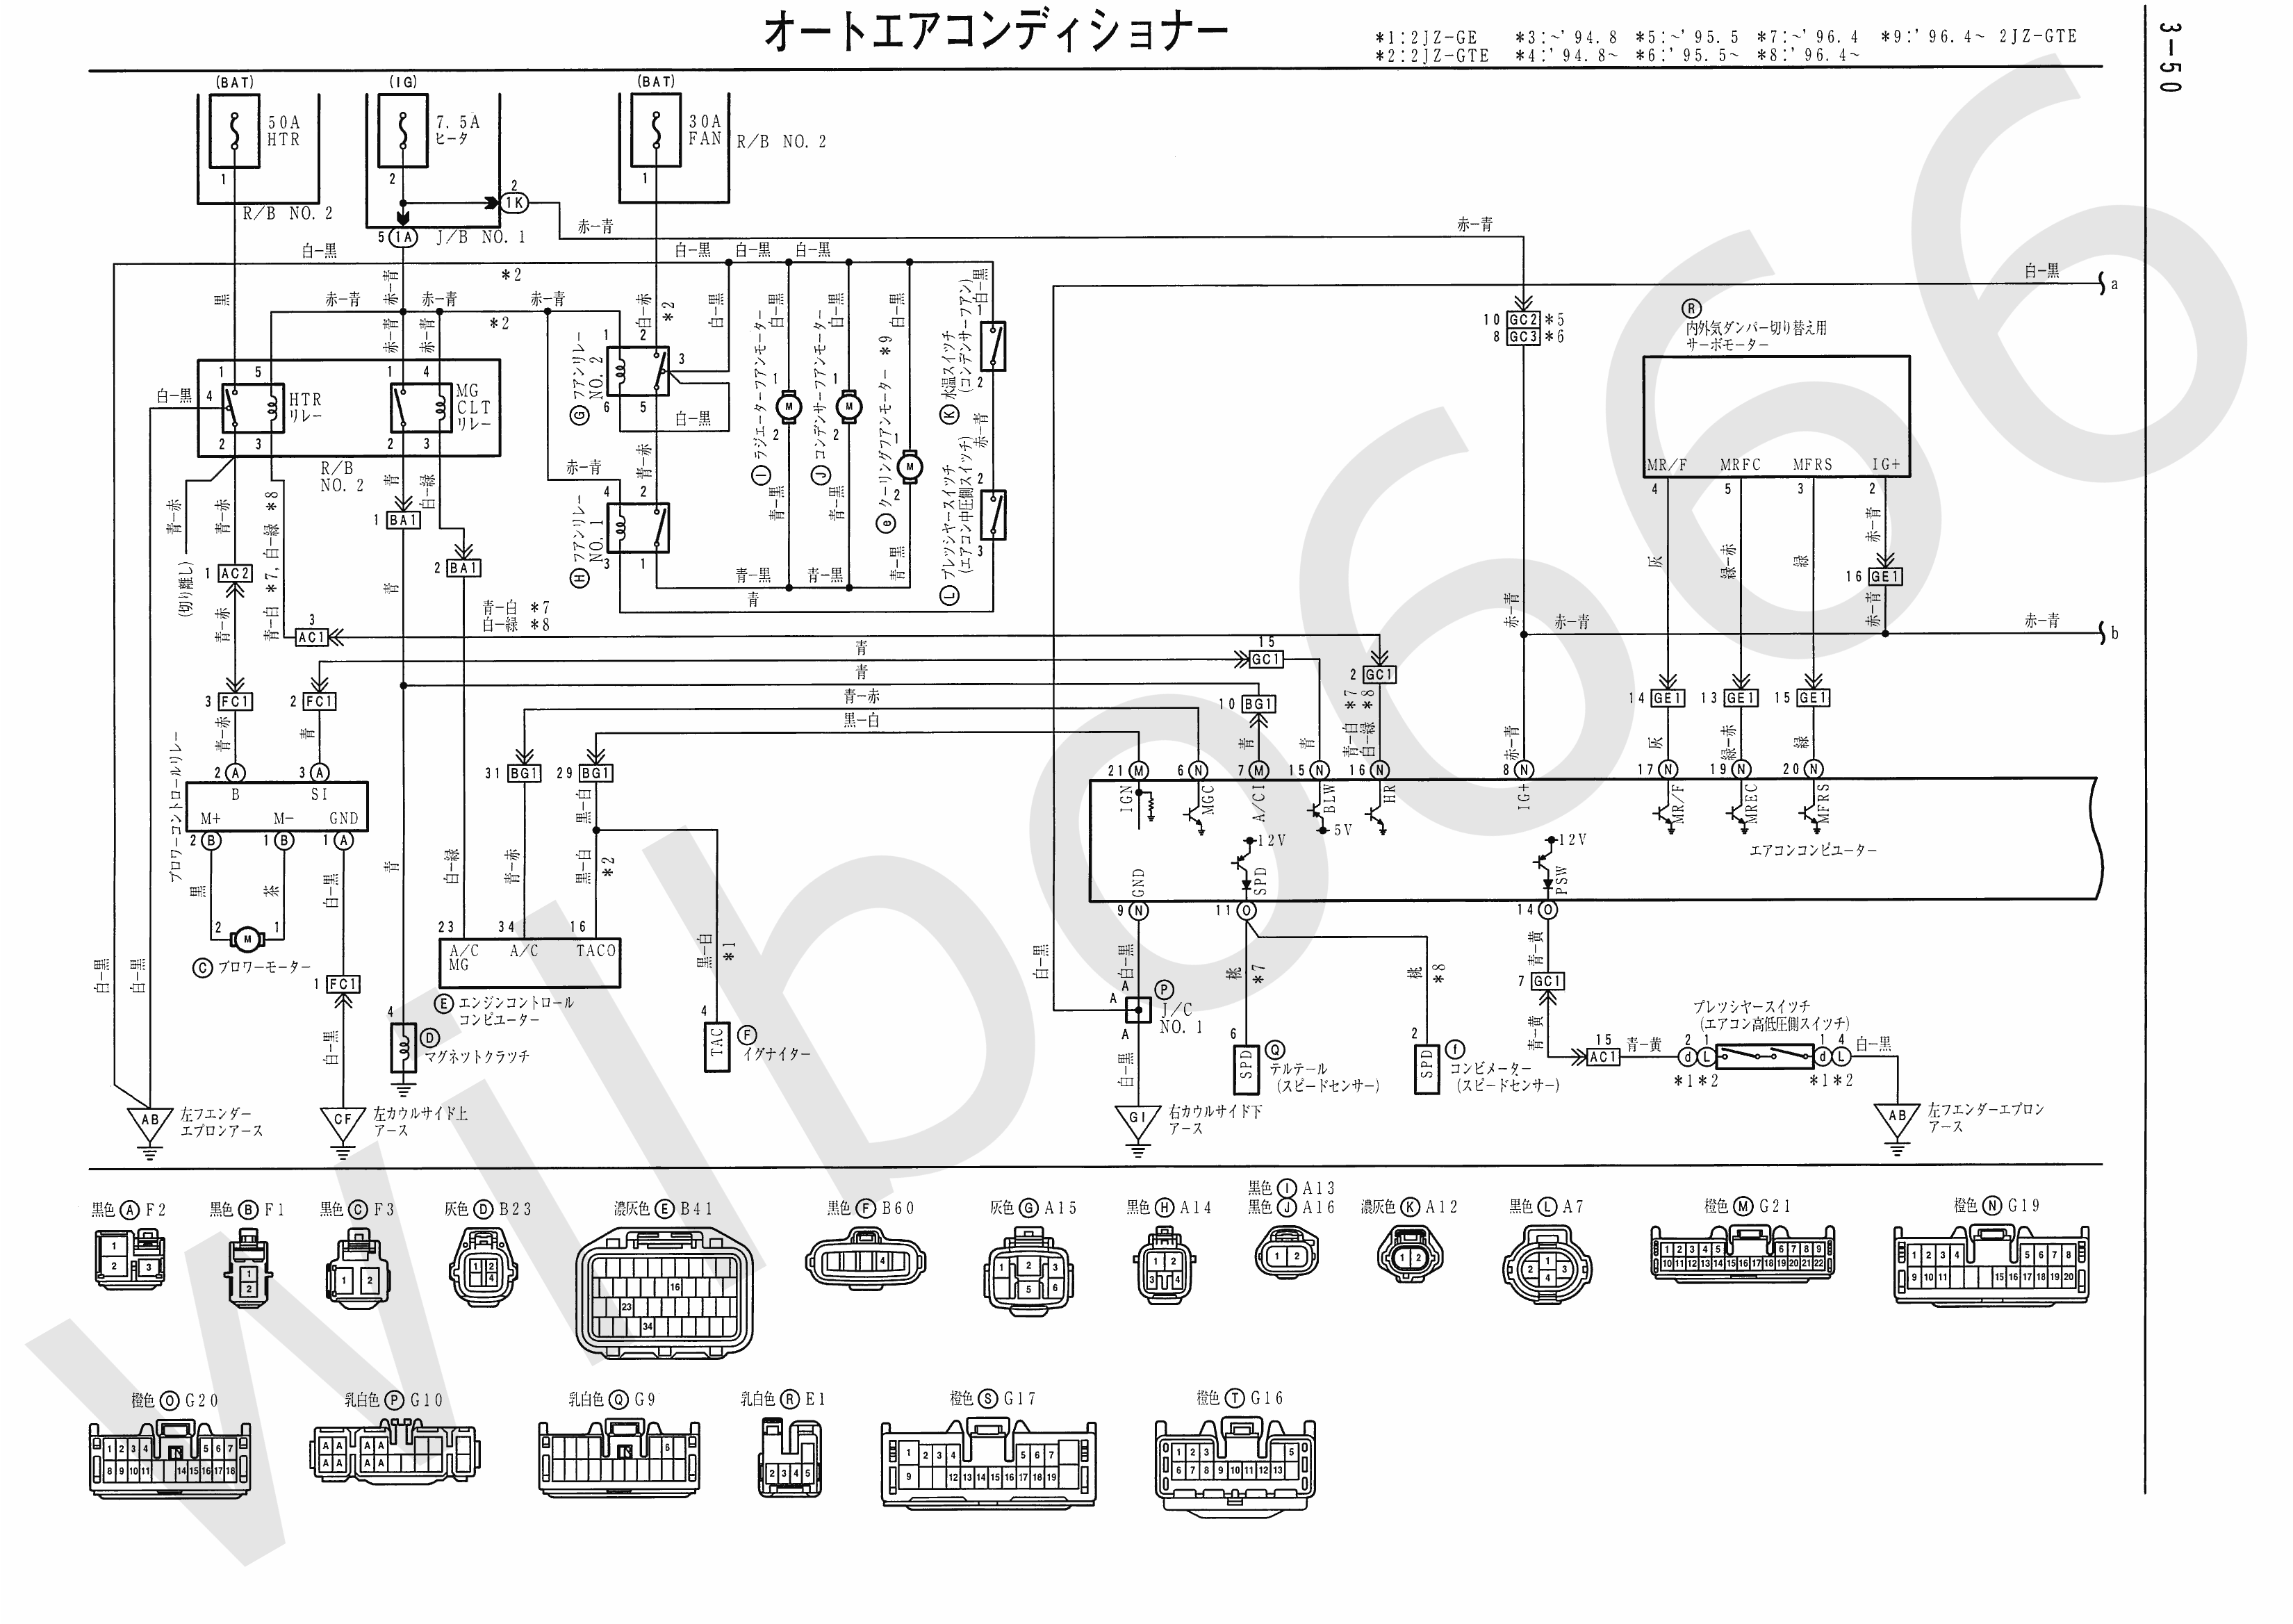 JZA80 Electrical Wiring Diagram 6742505 3 50?resize\\\\\\\\\\\\\\\\\\\\\\\\\\\\\\\\\\\\\\\\\\\\\\\\\\\\\\\\\\\\\\\\\\\\\\\\\\\\\\\\\\\\\\\\\\\\\\\\\\\\\\\\\\\\\\\\\\\\\\\\\\\\\\\=665%2C471 lexus ls400 wiring diagram 1999 lexus ls400 wiring diagram \u2022 free  at bakdesigns.co